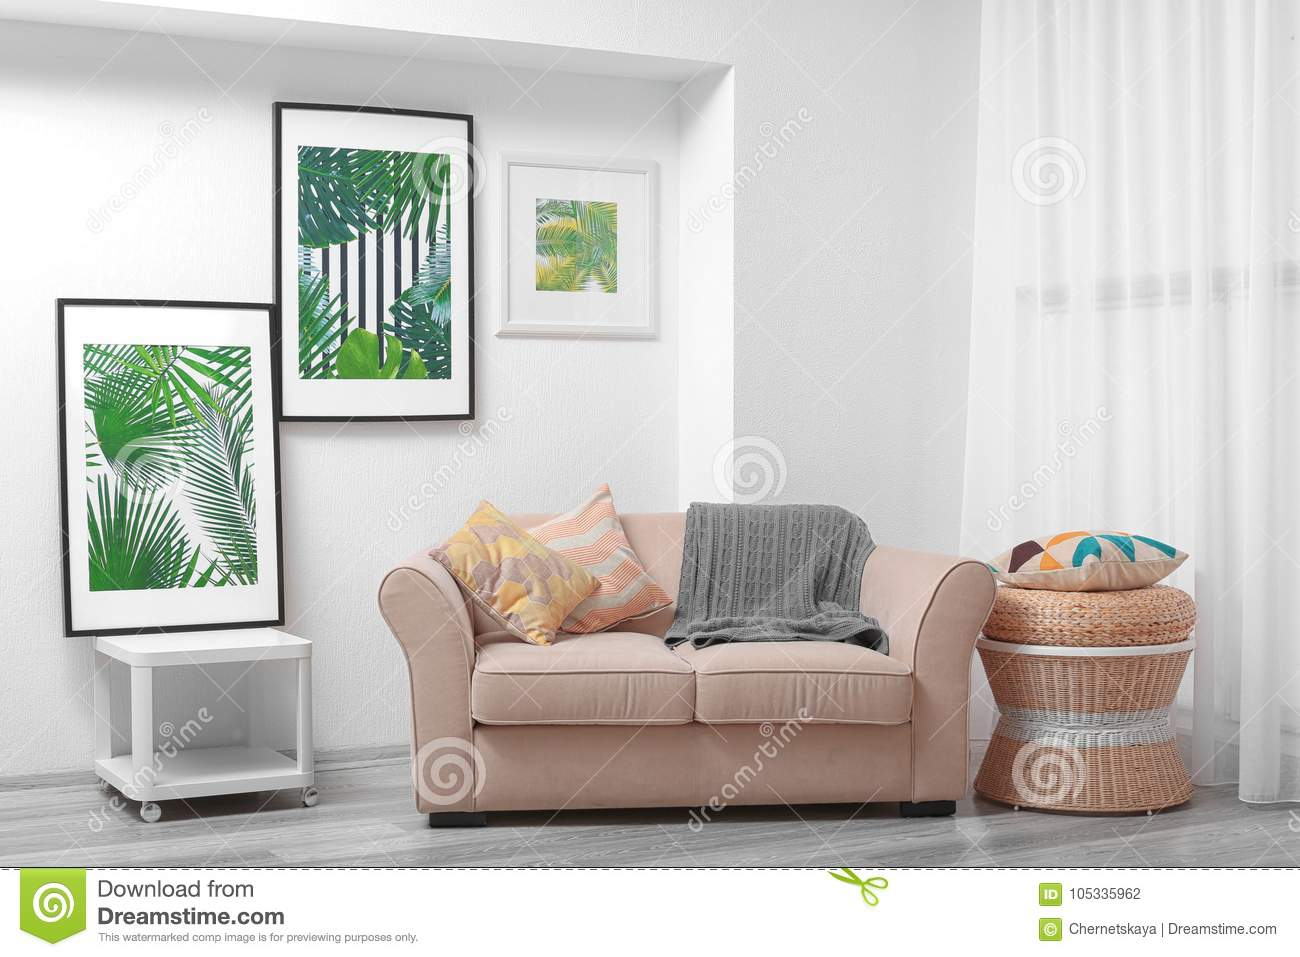 Modern Living Room Design With Framed Pictures Of Leaves Stock Photo ...